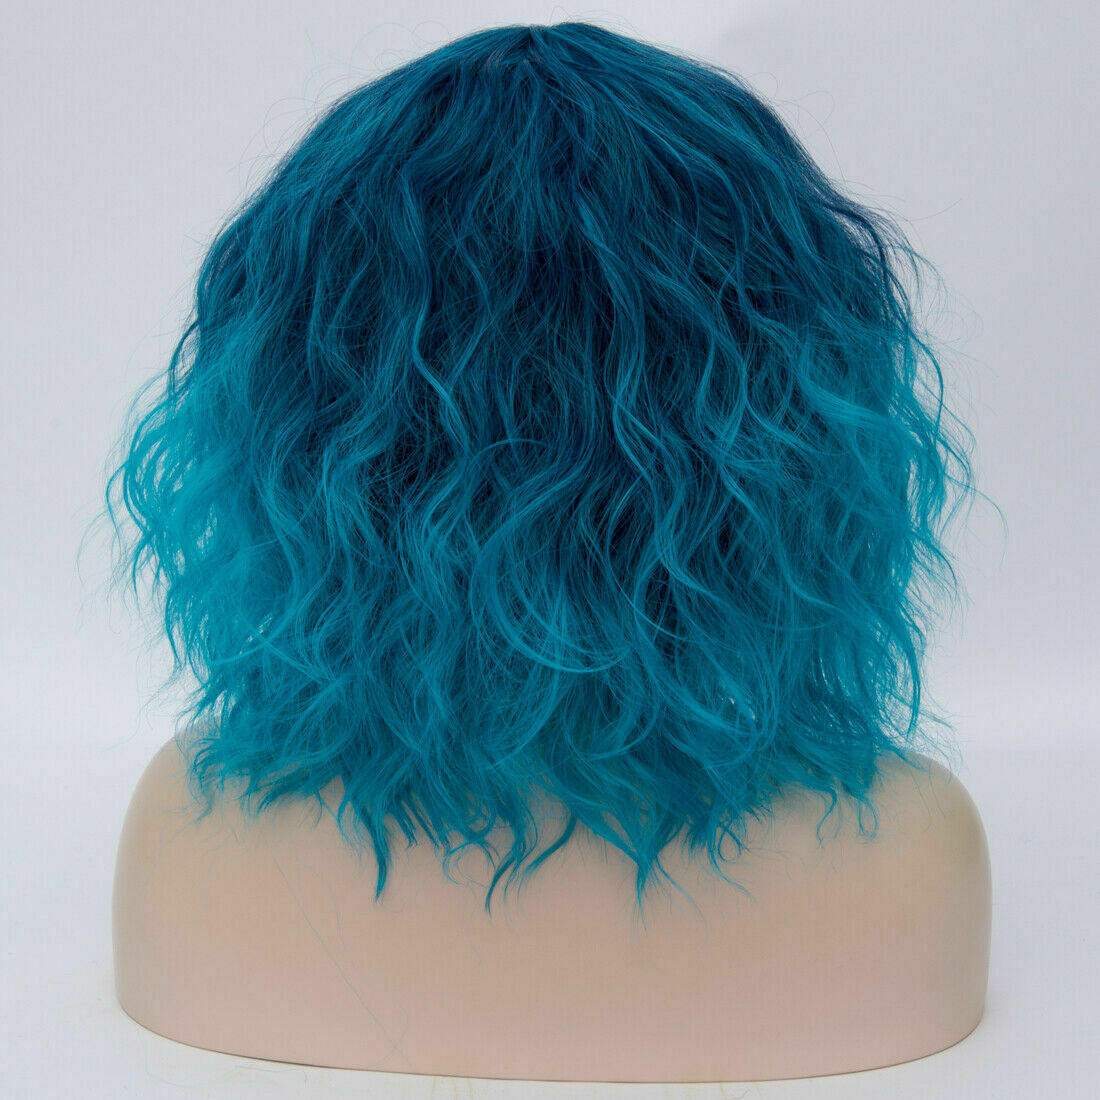 Lolita-Women-039-s-Short-Curly-Anime-Synthetic-Hair-Heat-Resistant-Cosplay-Party-Wig miniature 55